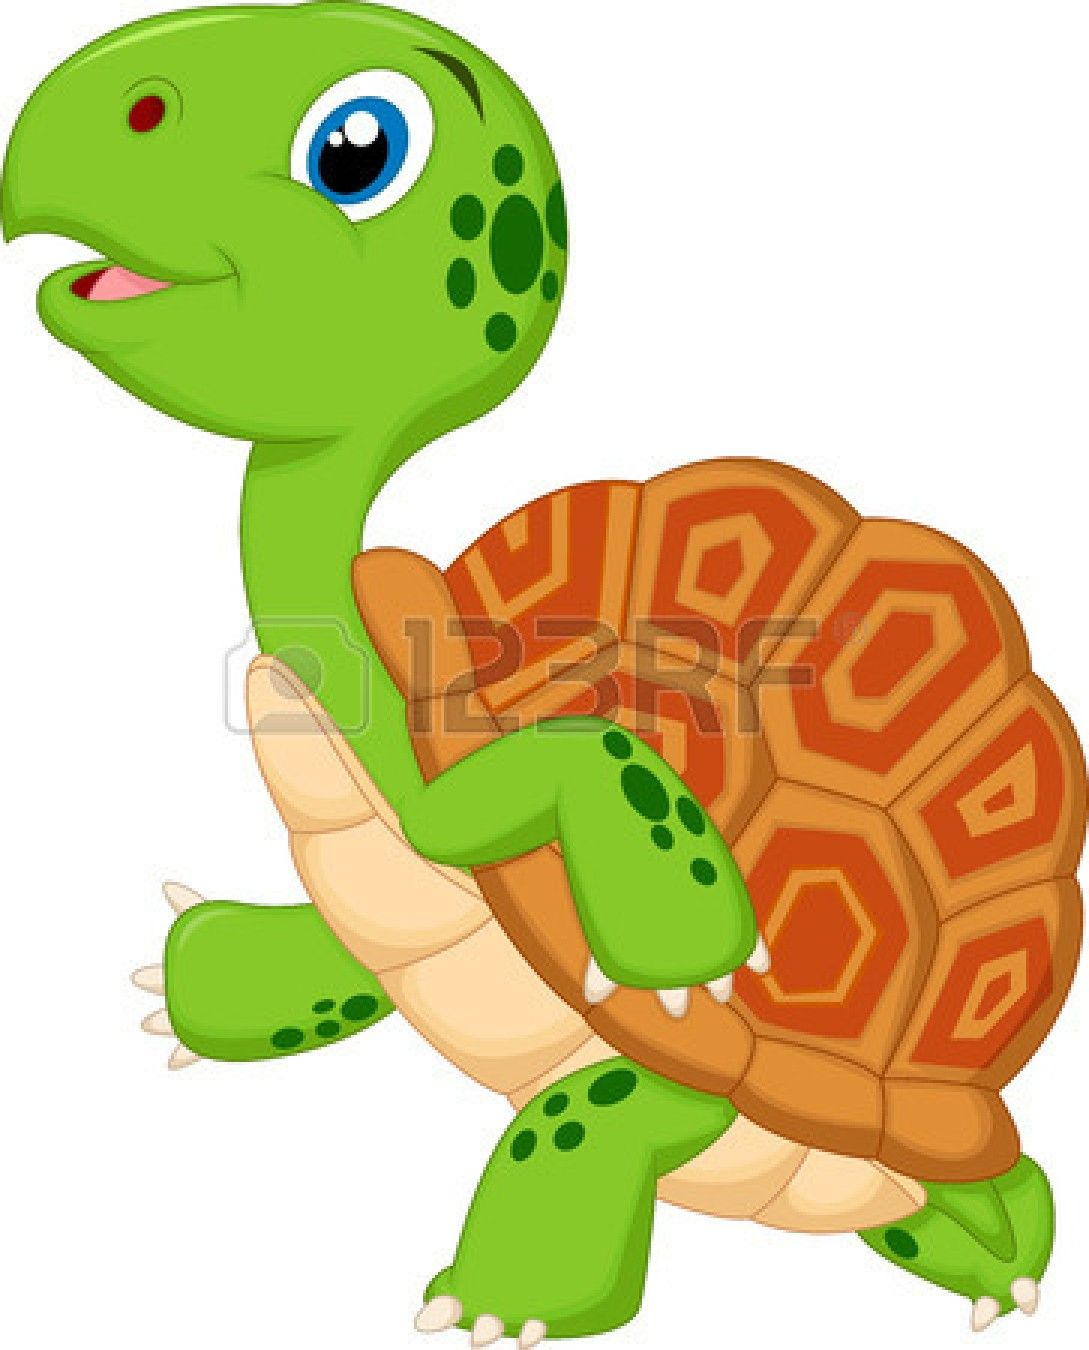 small resolution of cute green turtle cartoon royalty free cliparts vectors and